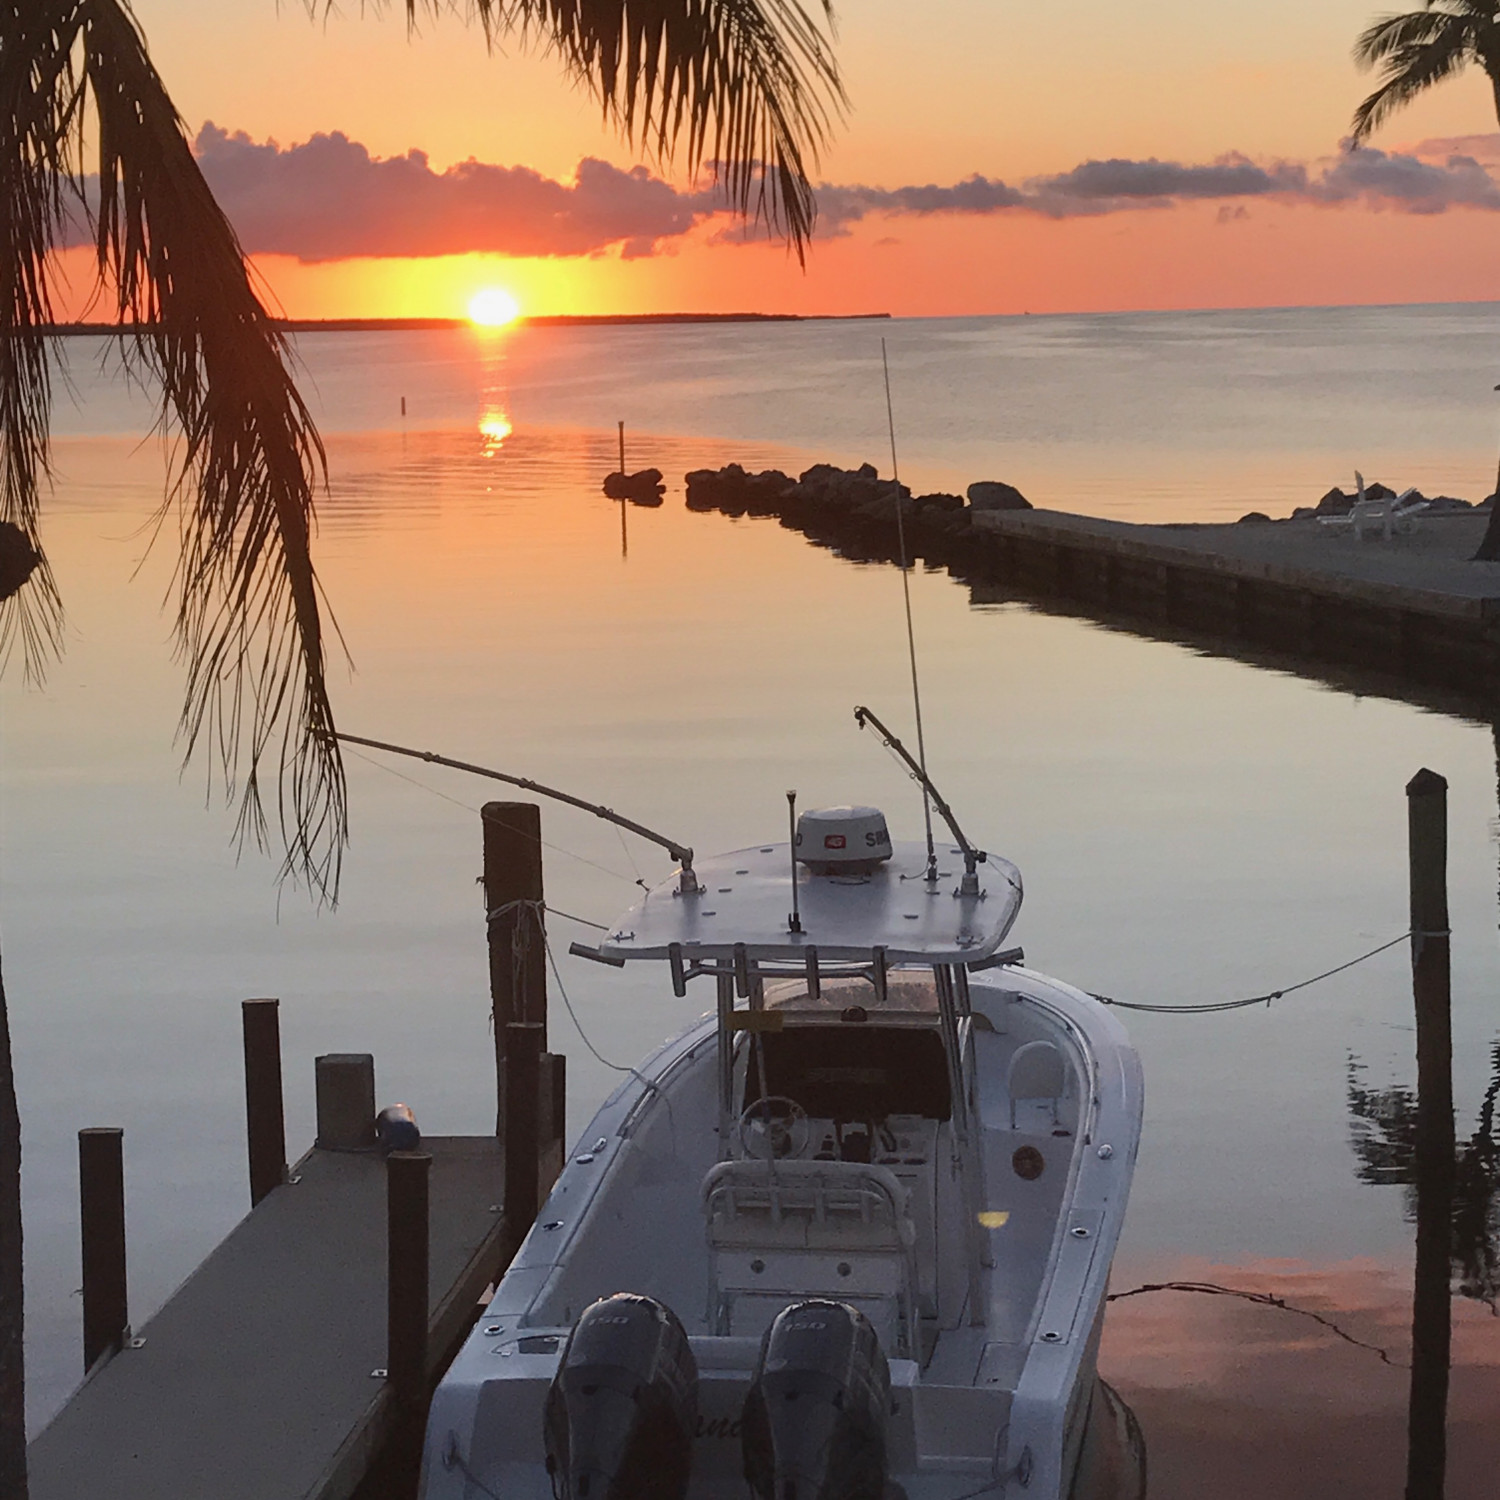 Title: Islamorada sunset - On board their Sportsman Open 252 Center Console - Location: Islamorada, FL. Participating in the Photo Contest #SportsmanNovember2017